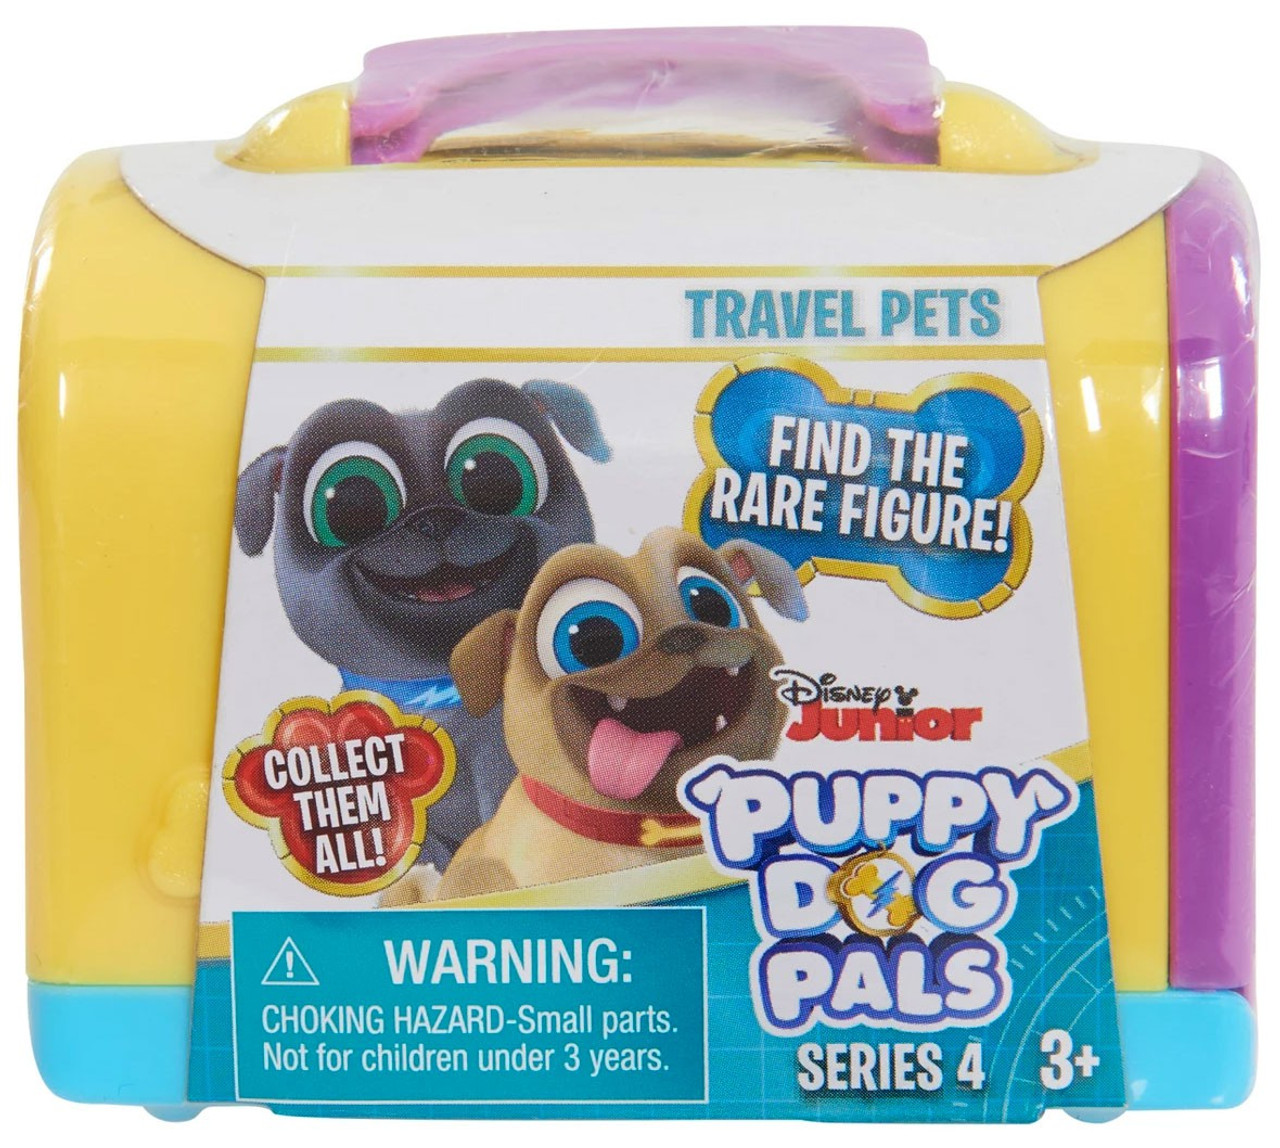 Disney Junior Puppy Dog Pals Series 4 Travel Pets Mystery Pack Yellow Just Play Toywiz